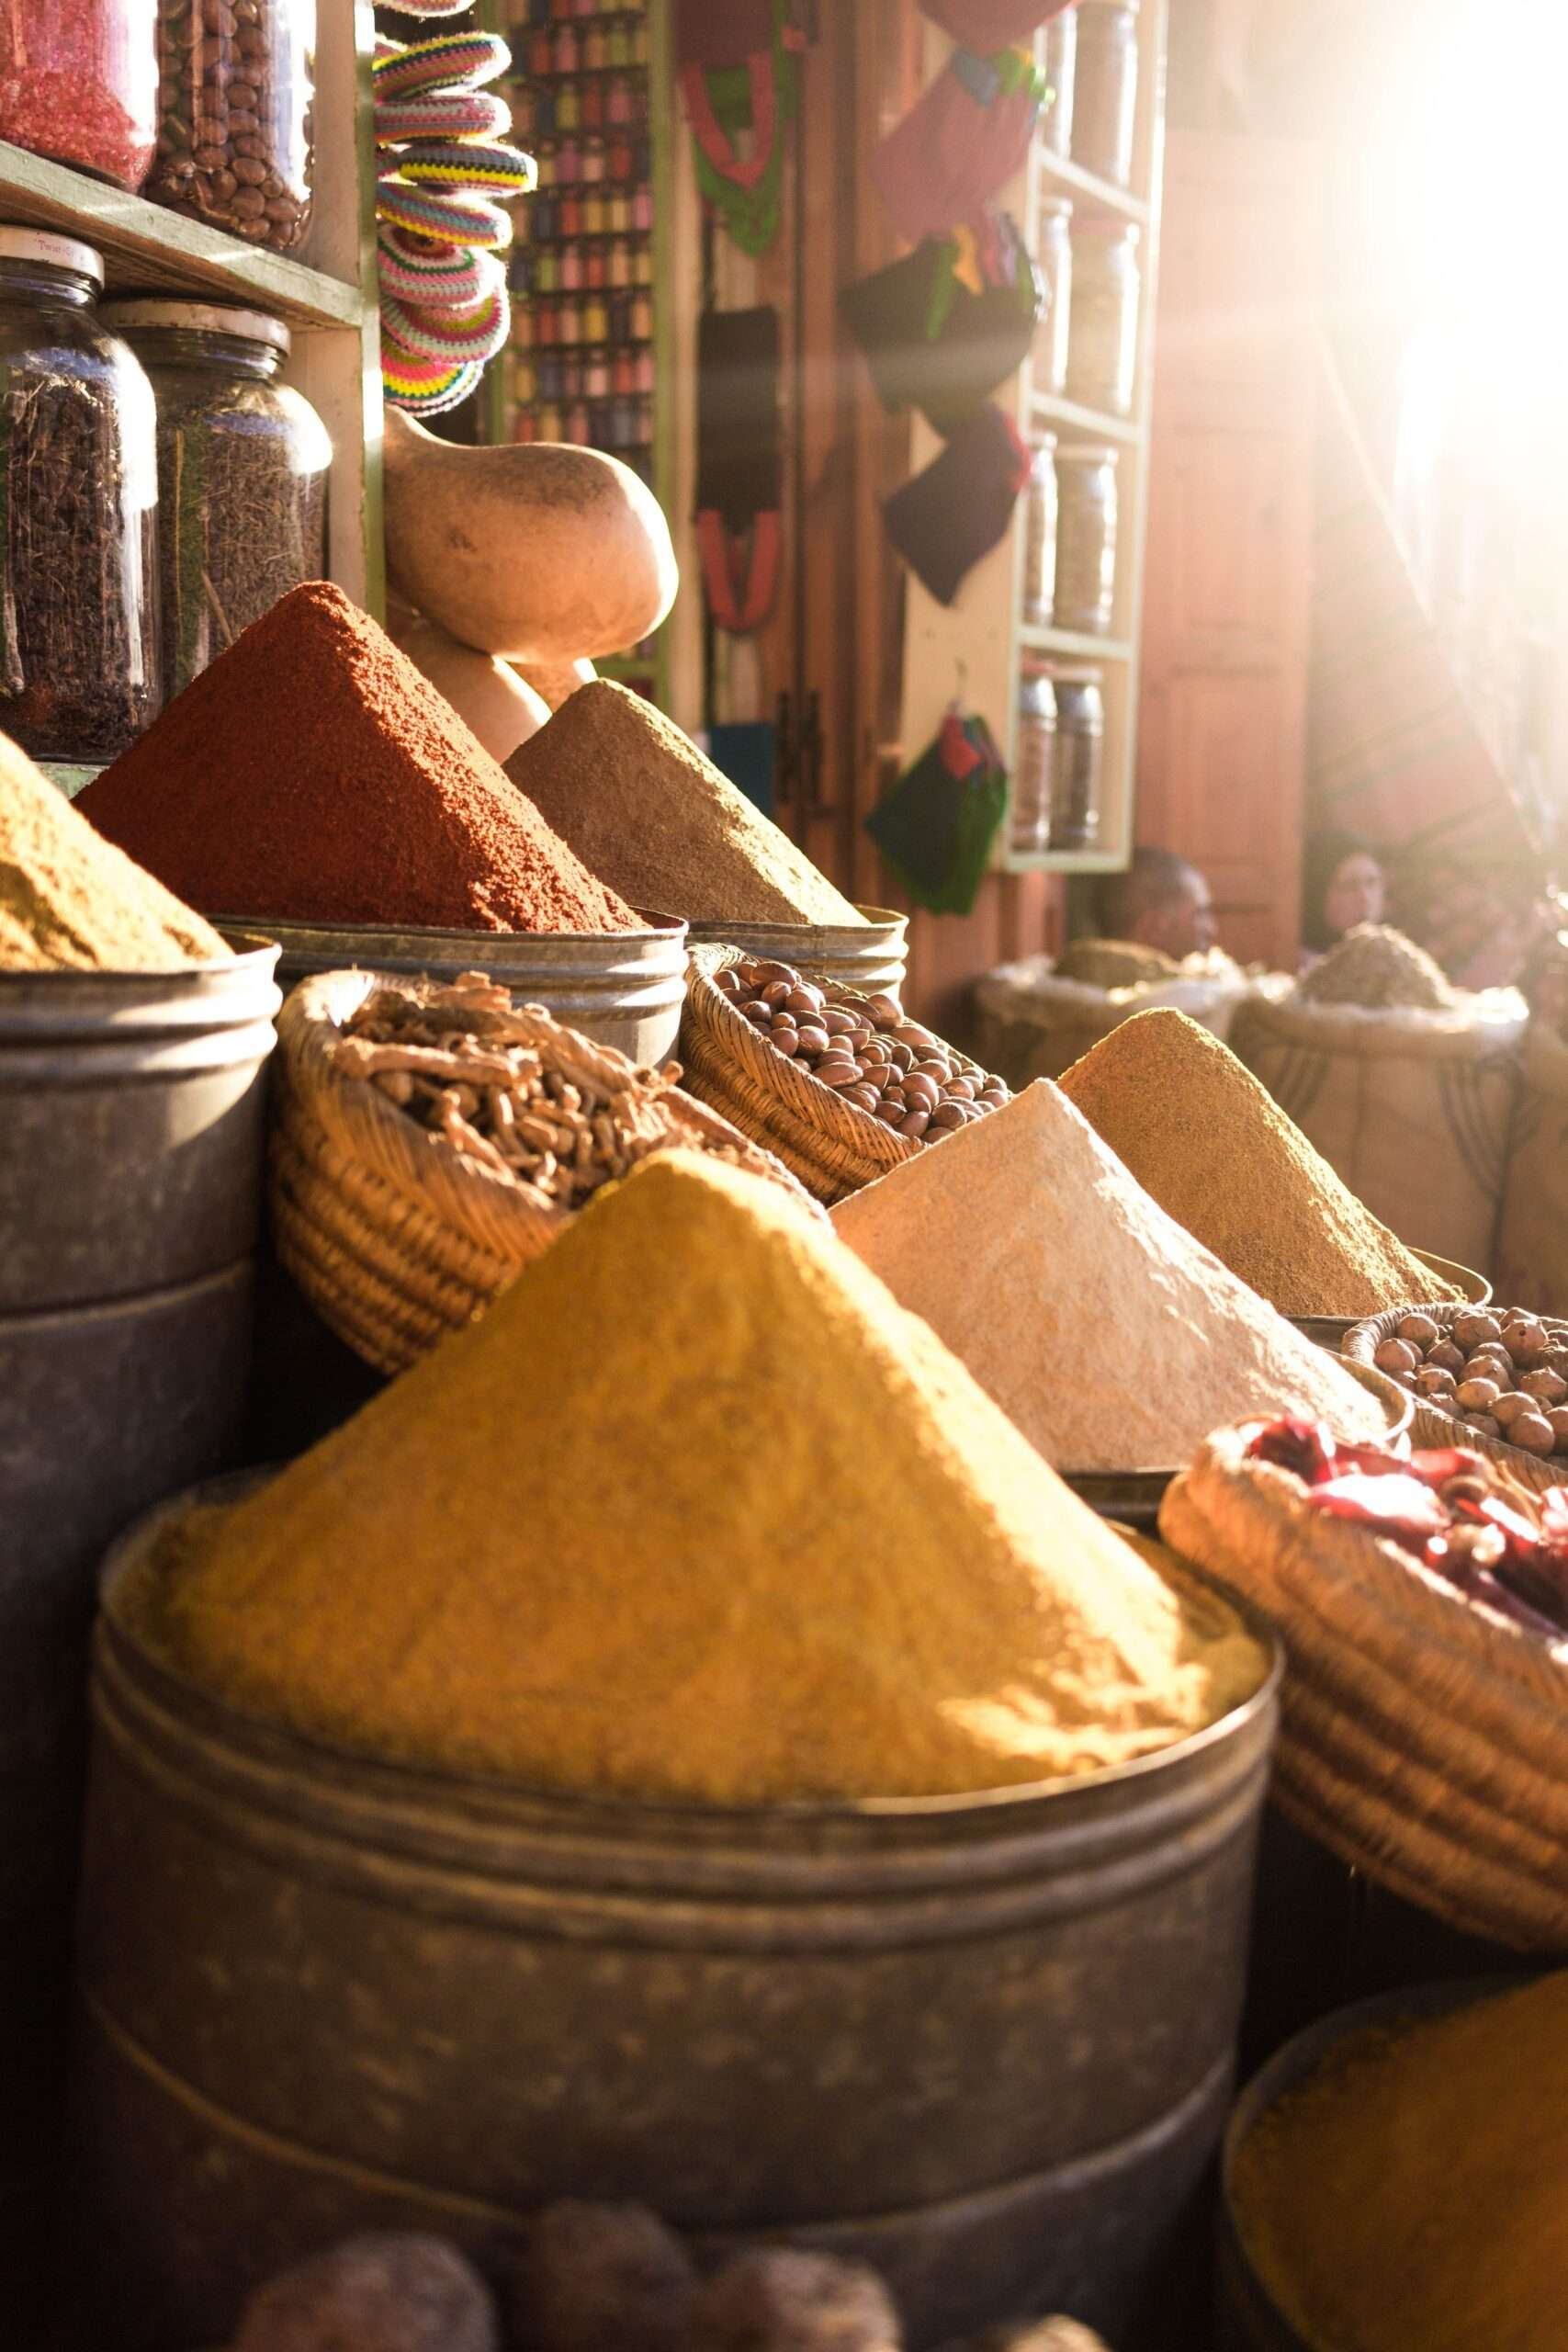 large piles of colourful spices at a market in Marrakesh